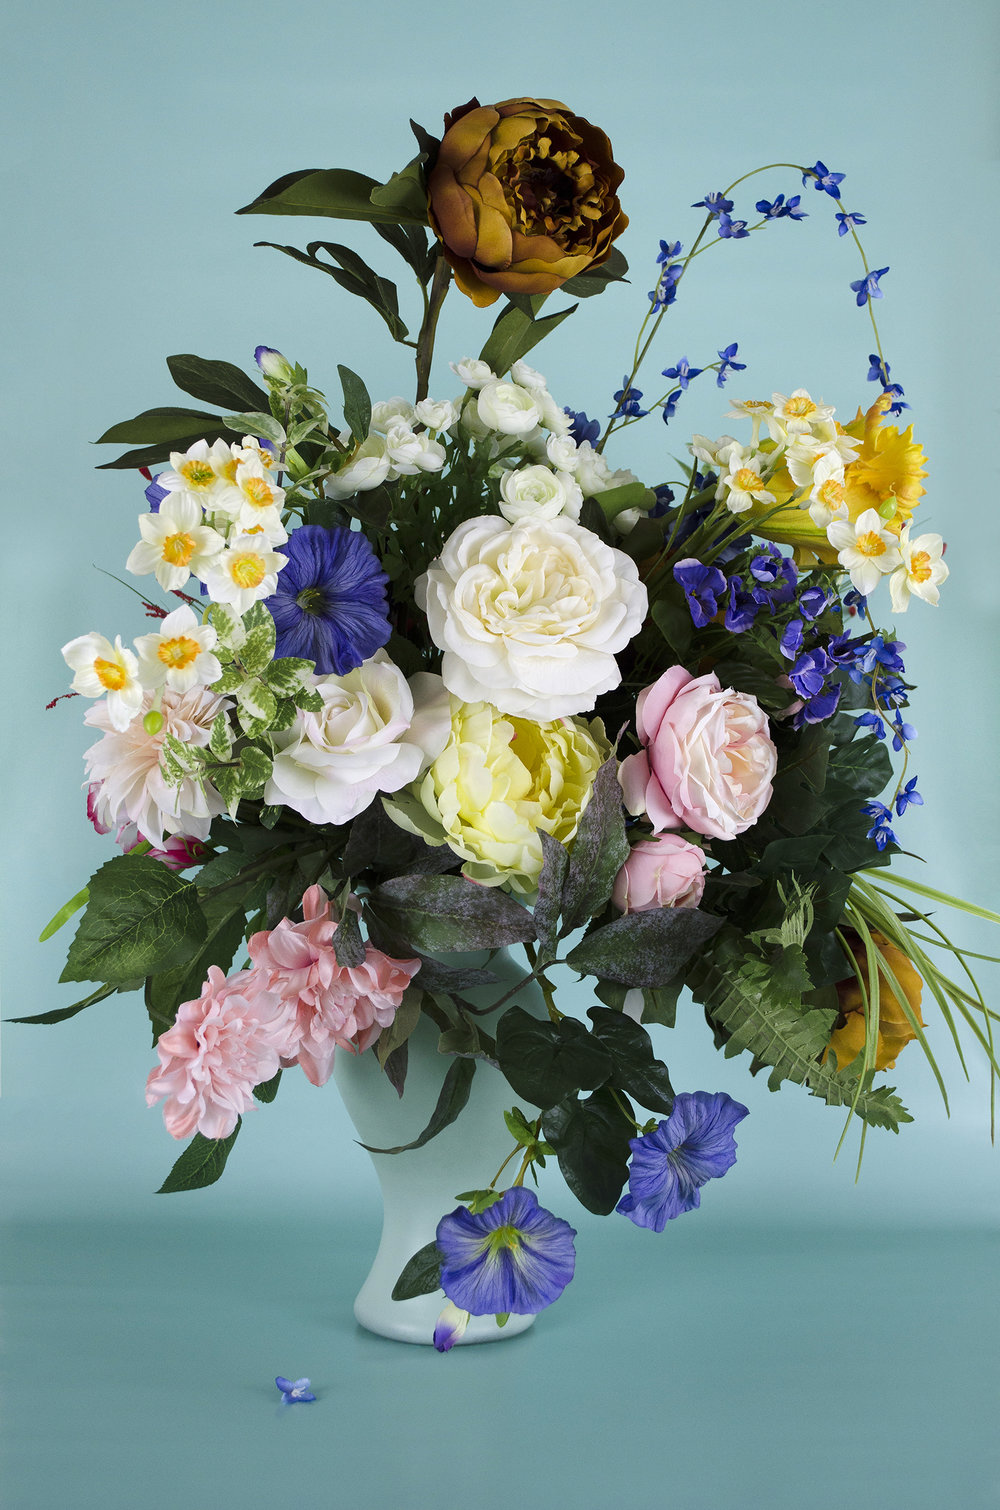 Silk Flowers in a Vase with a Peony and Apple Blossom at the Top